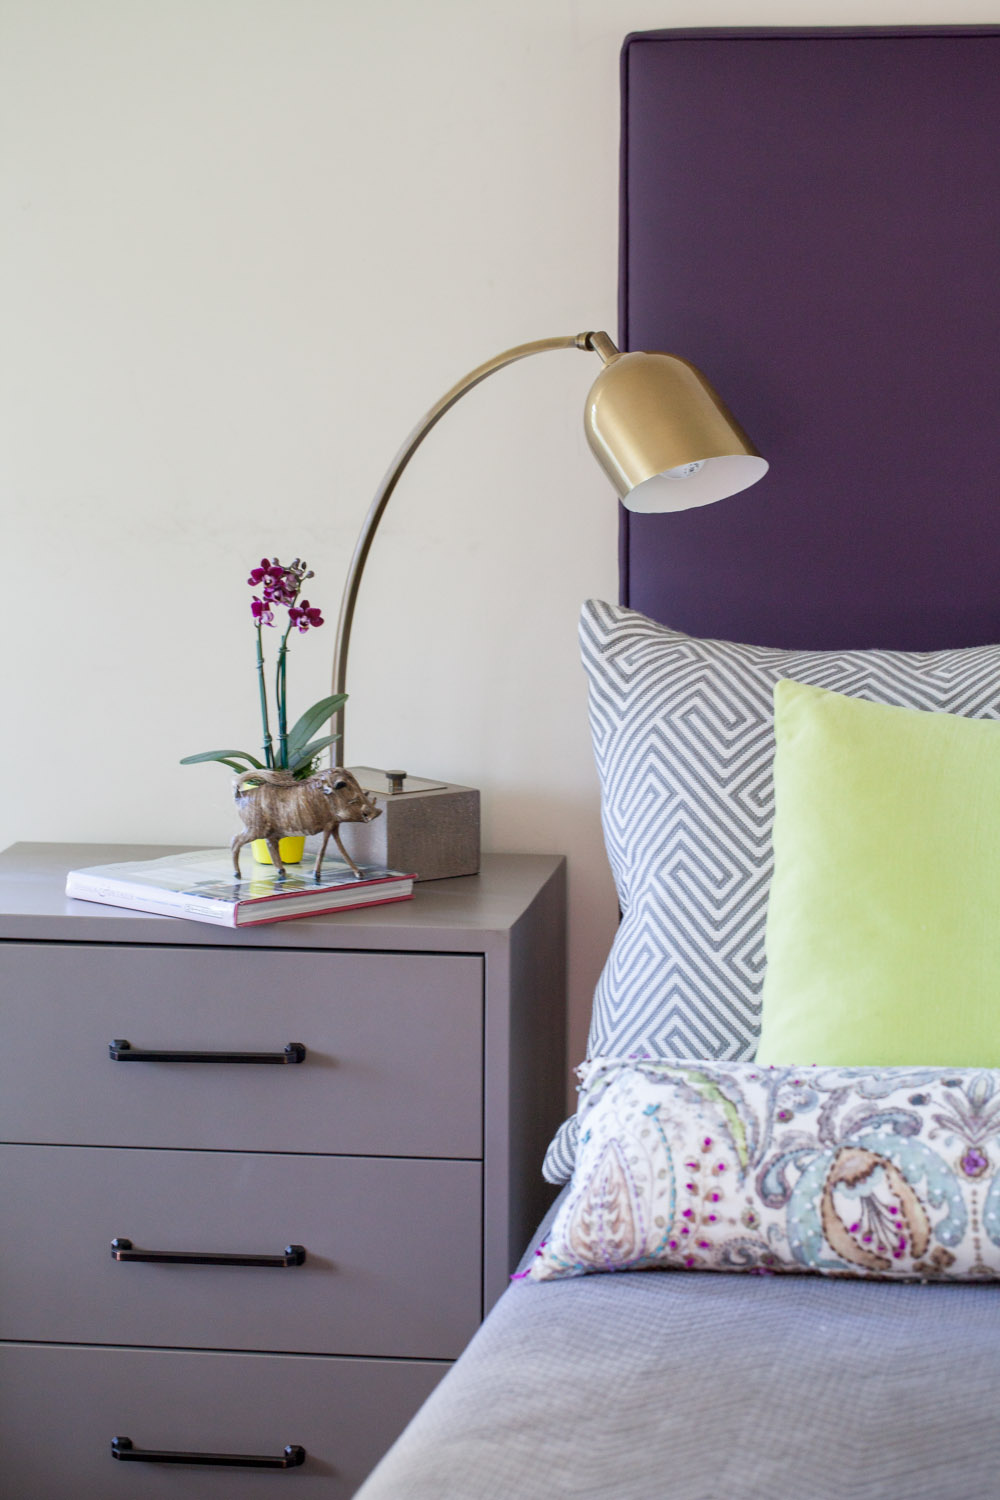 Interior Design by Price Style and Design featuring Pantone Color of the Year: Ultra Violet. Photography by  Terry Riggins .